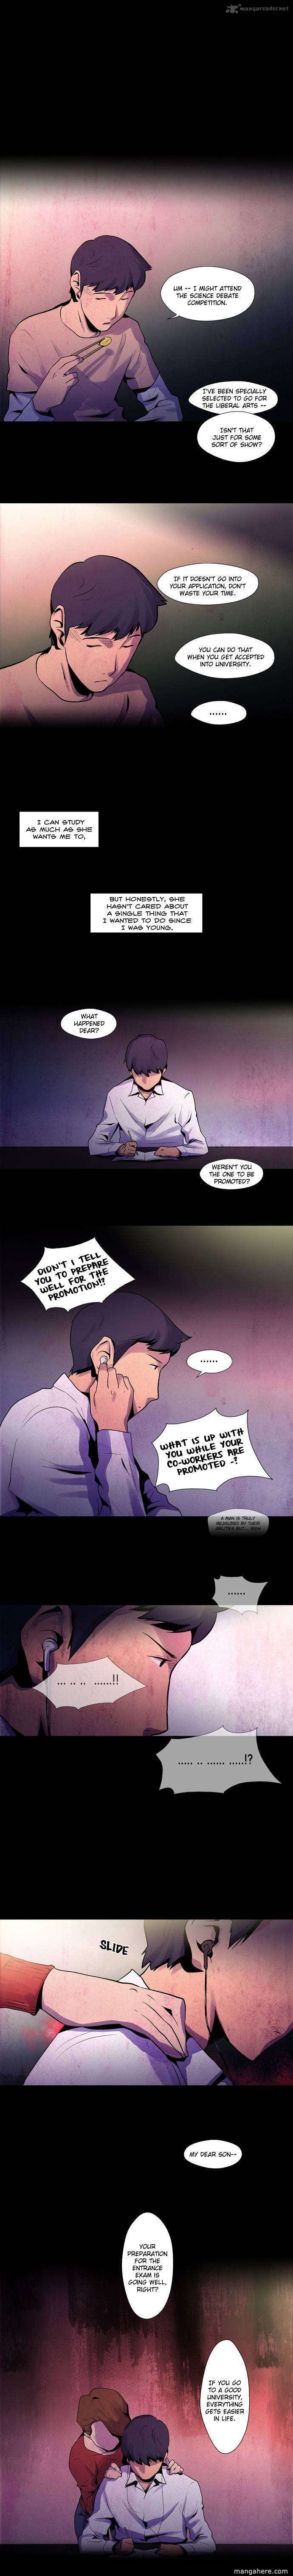 Dr. Frost 11 Page 2